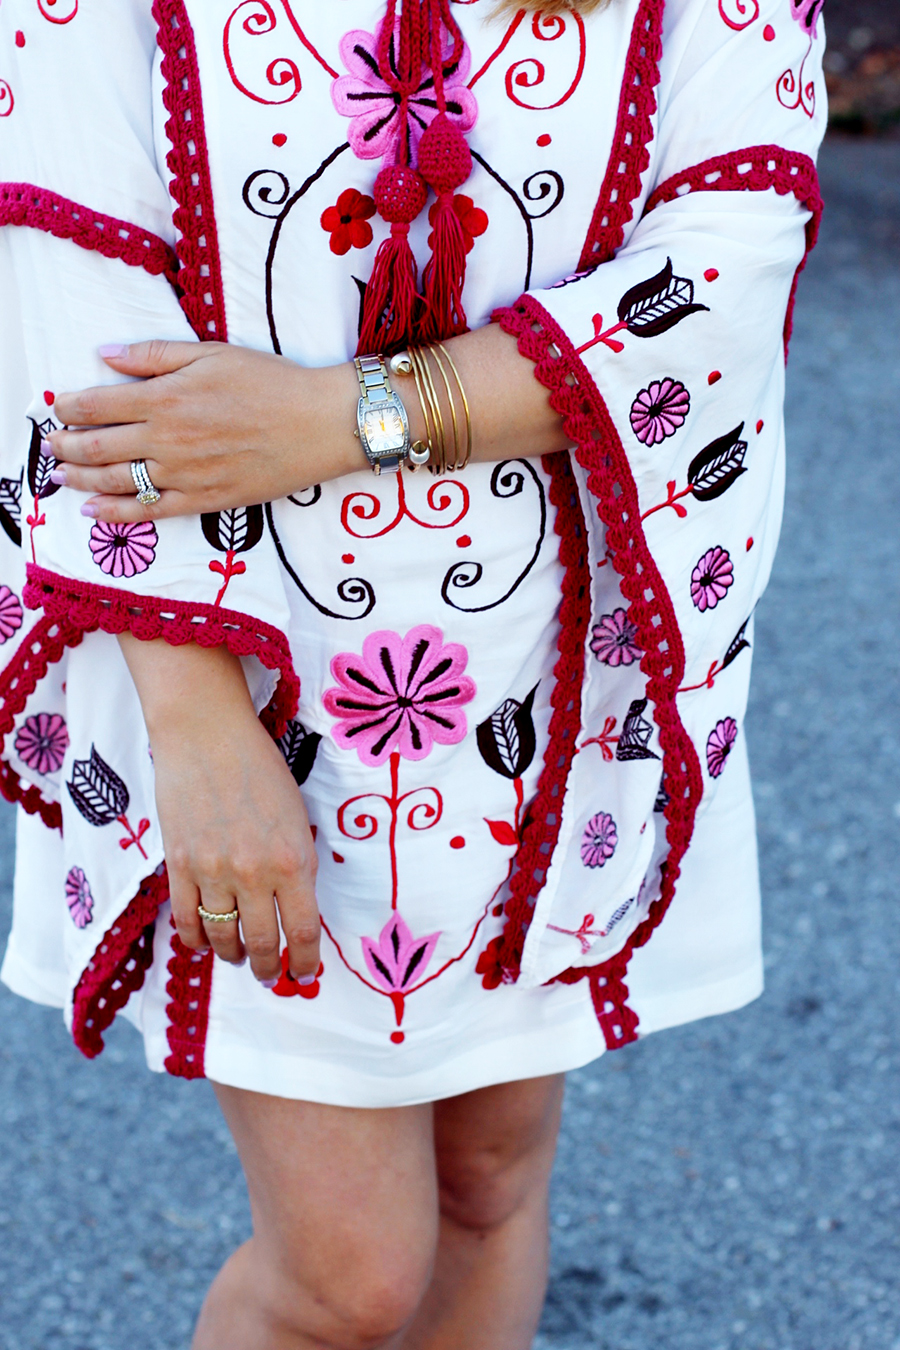 bell-sleeve-maternity-dress-bohemian-style-dress-outfit-inspiration-9